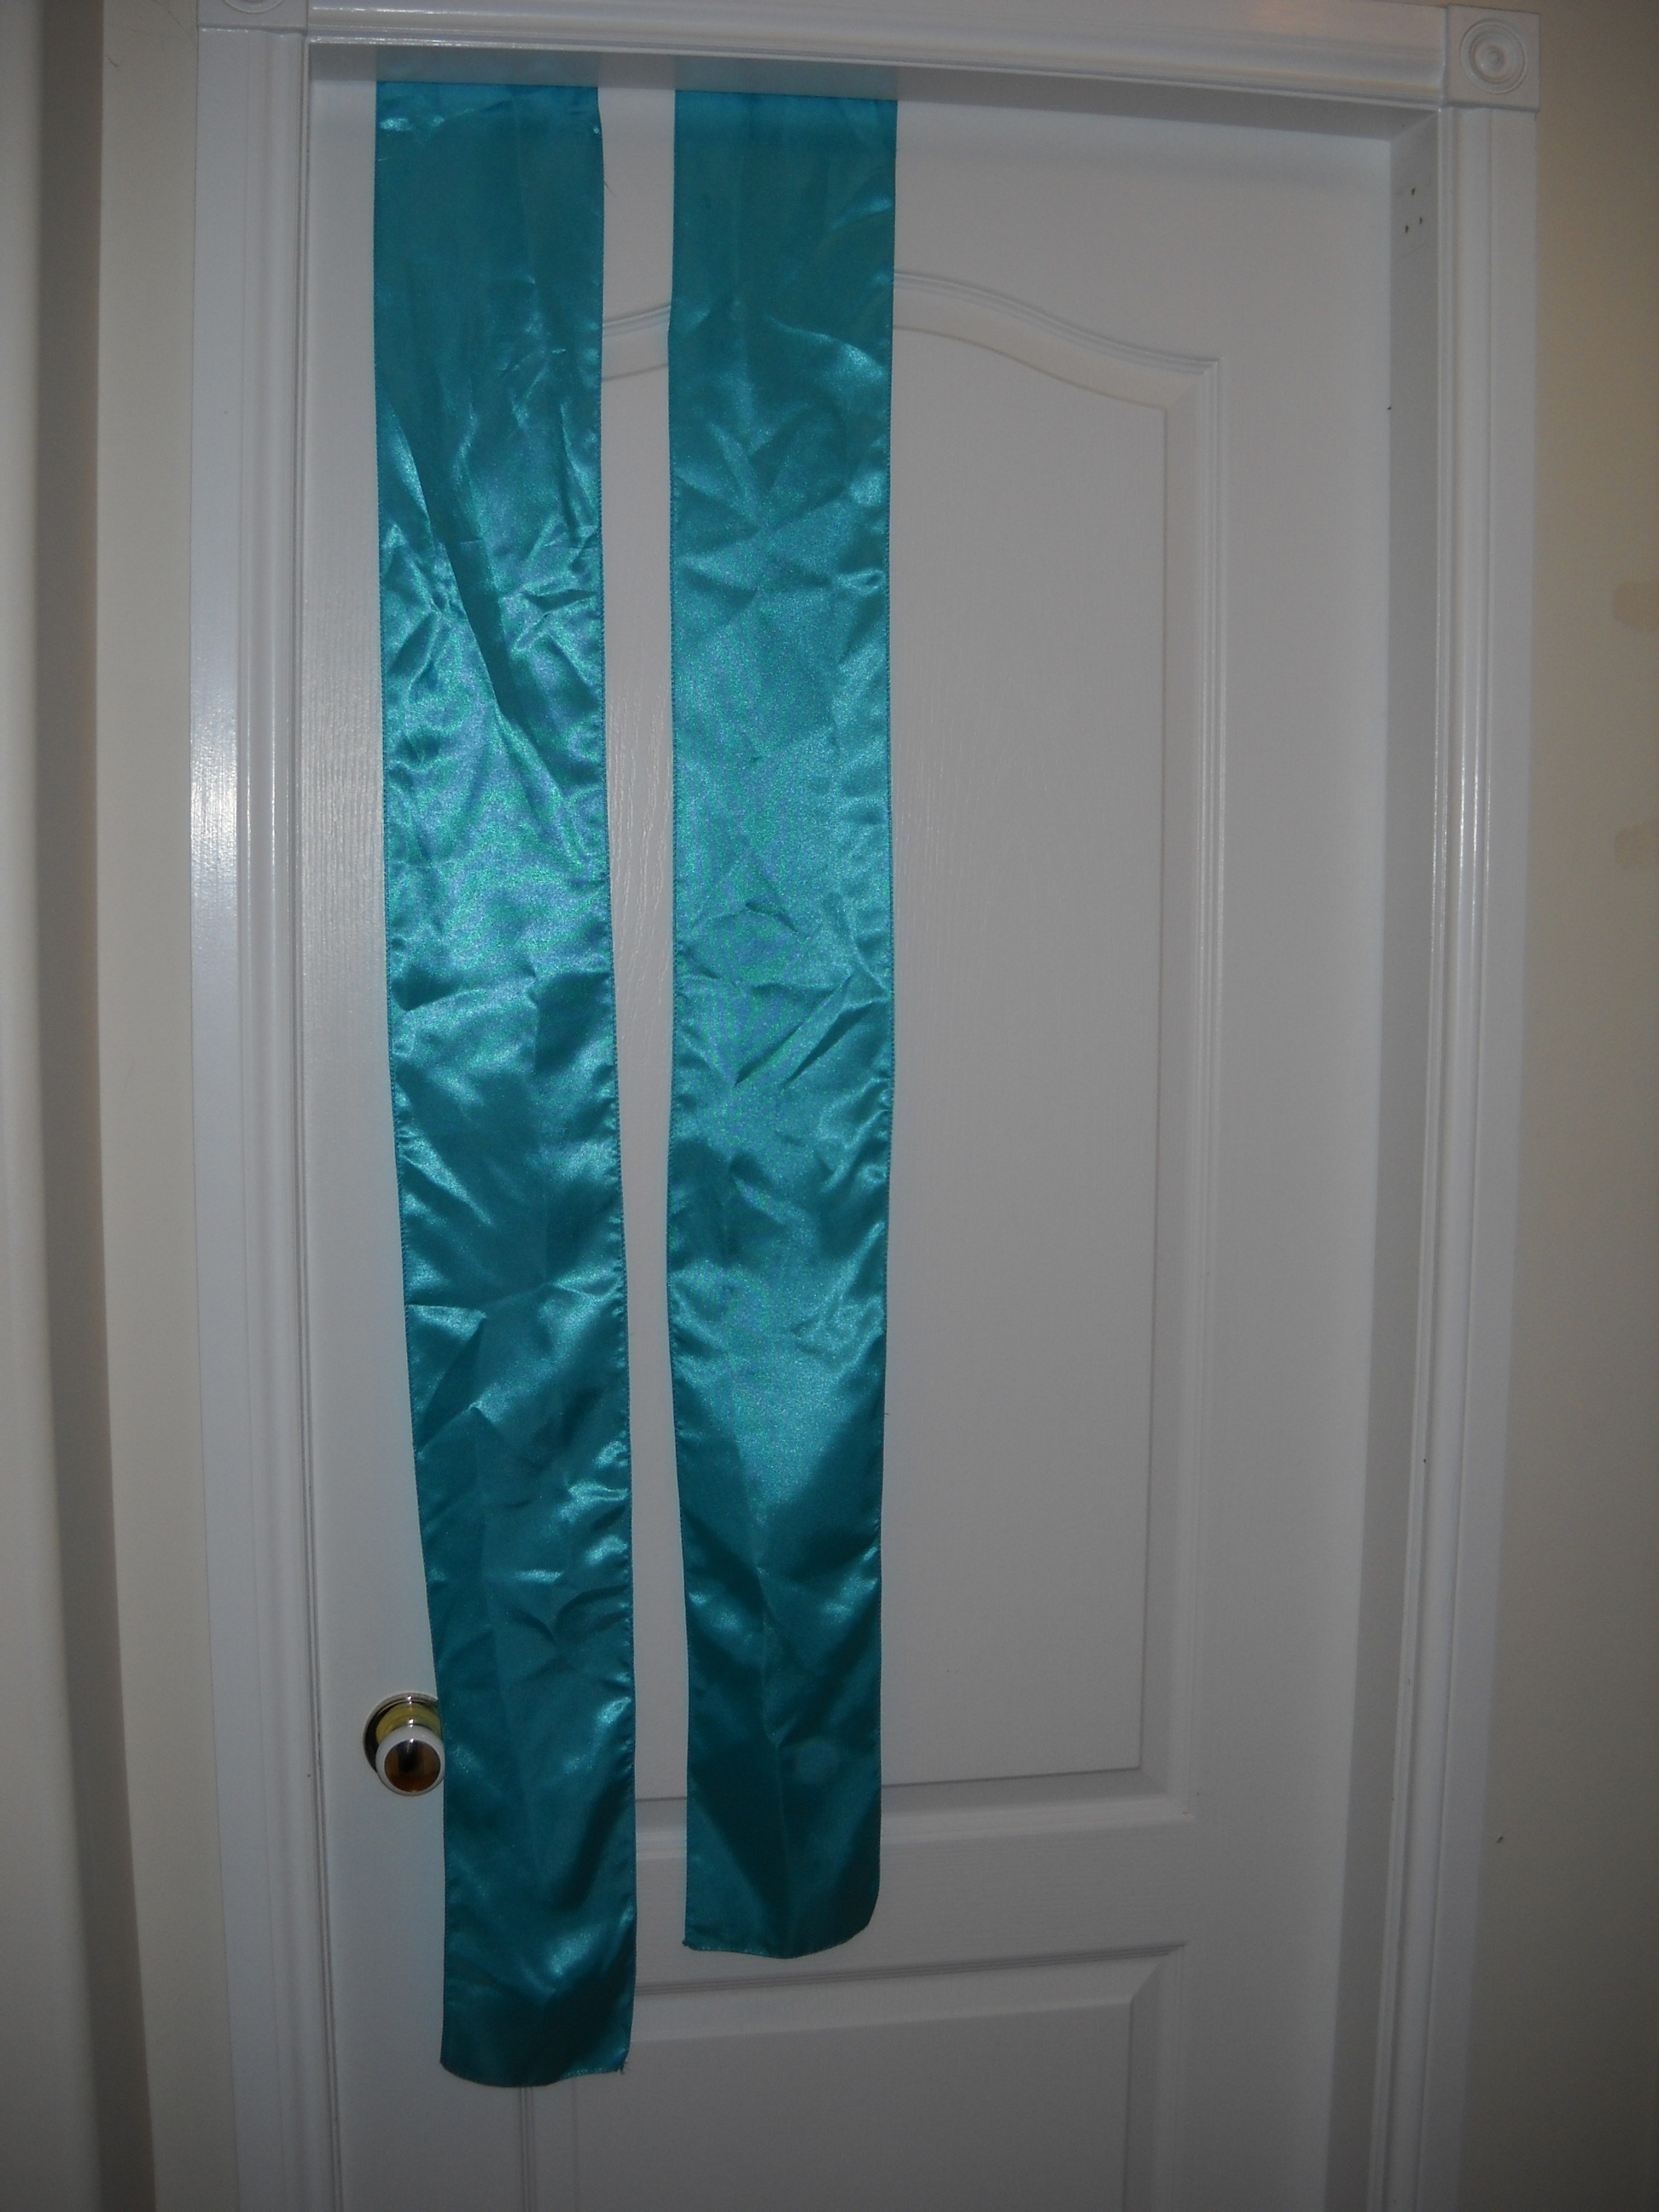 Chair, Satin, For, Turquoise, Sale, Sashes, Claytonandshauna